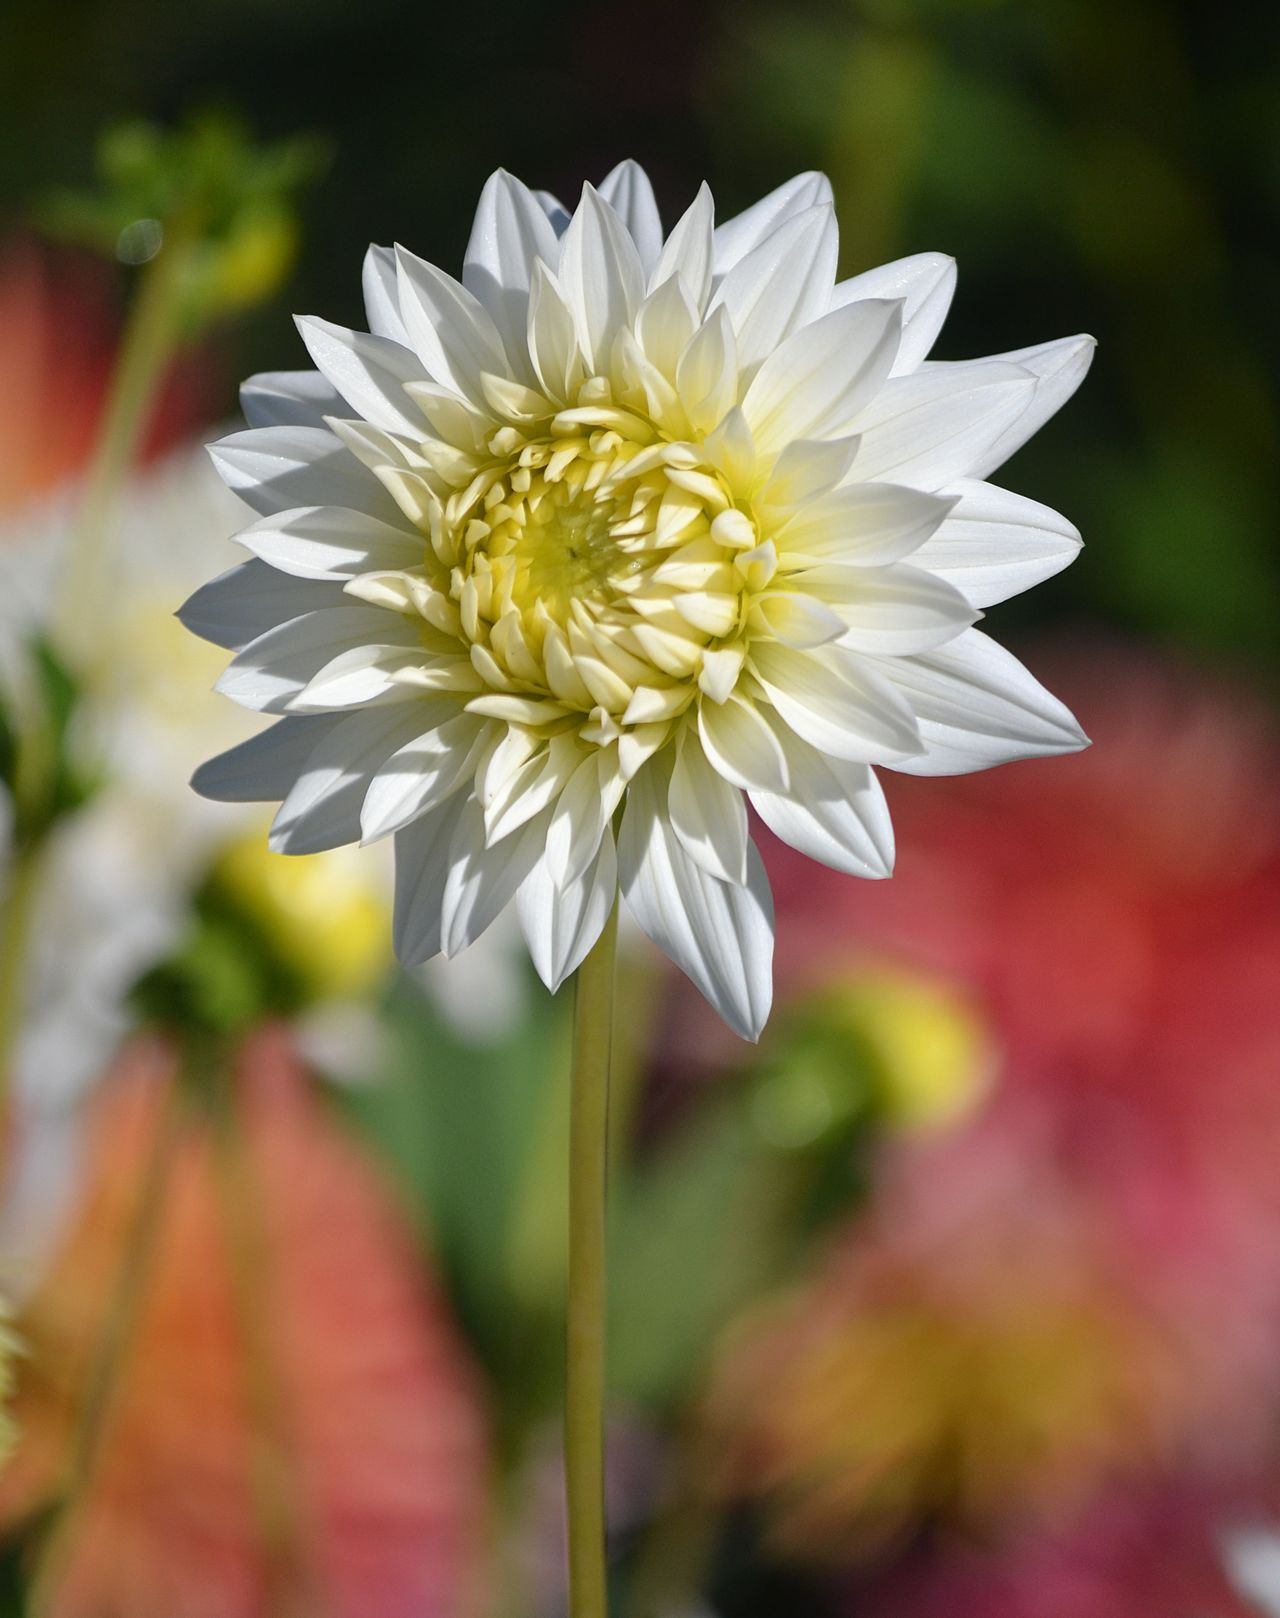 Simple, White Dahlia Beauty In Nature Blooming Close-up Dahlia Day Flower Flower Head Focus On Foreground Fragility Freshness Garden Garden Photography Gardening Growth Nature Nature No People Open Edit Outdoors Petal Plant White